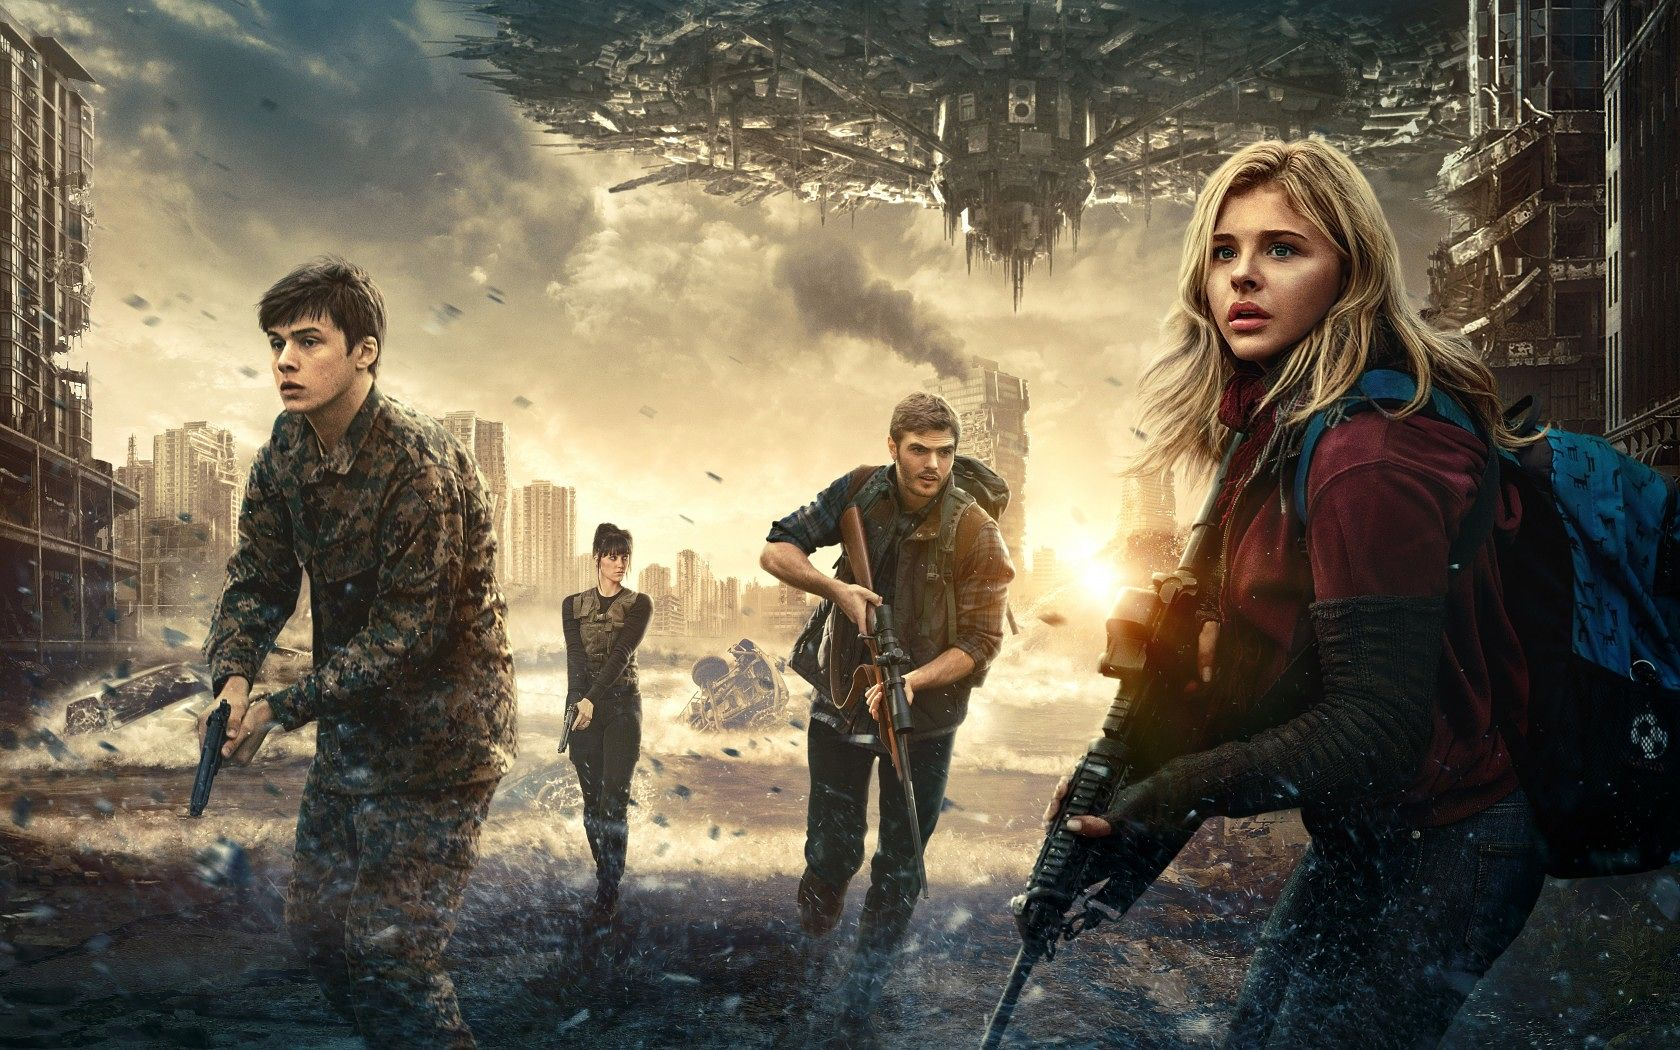 5th Wave review